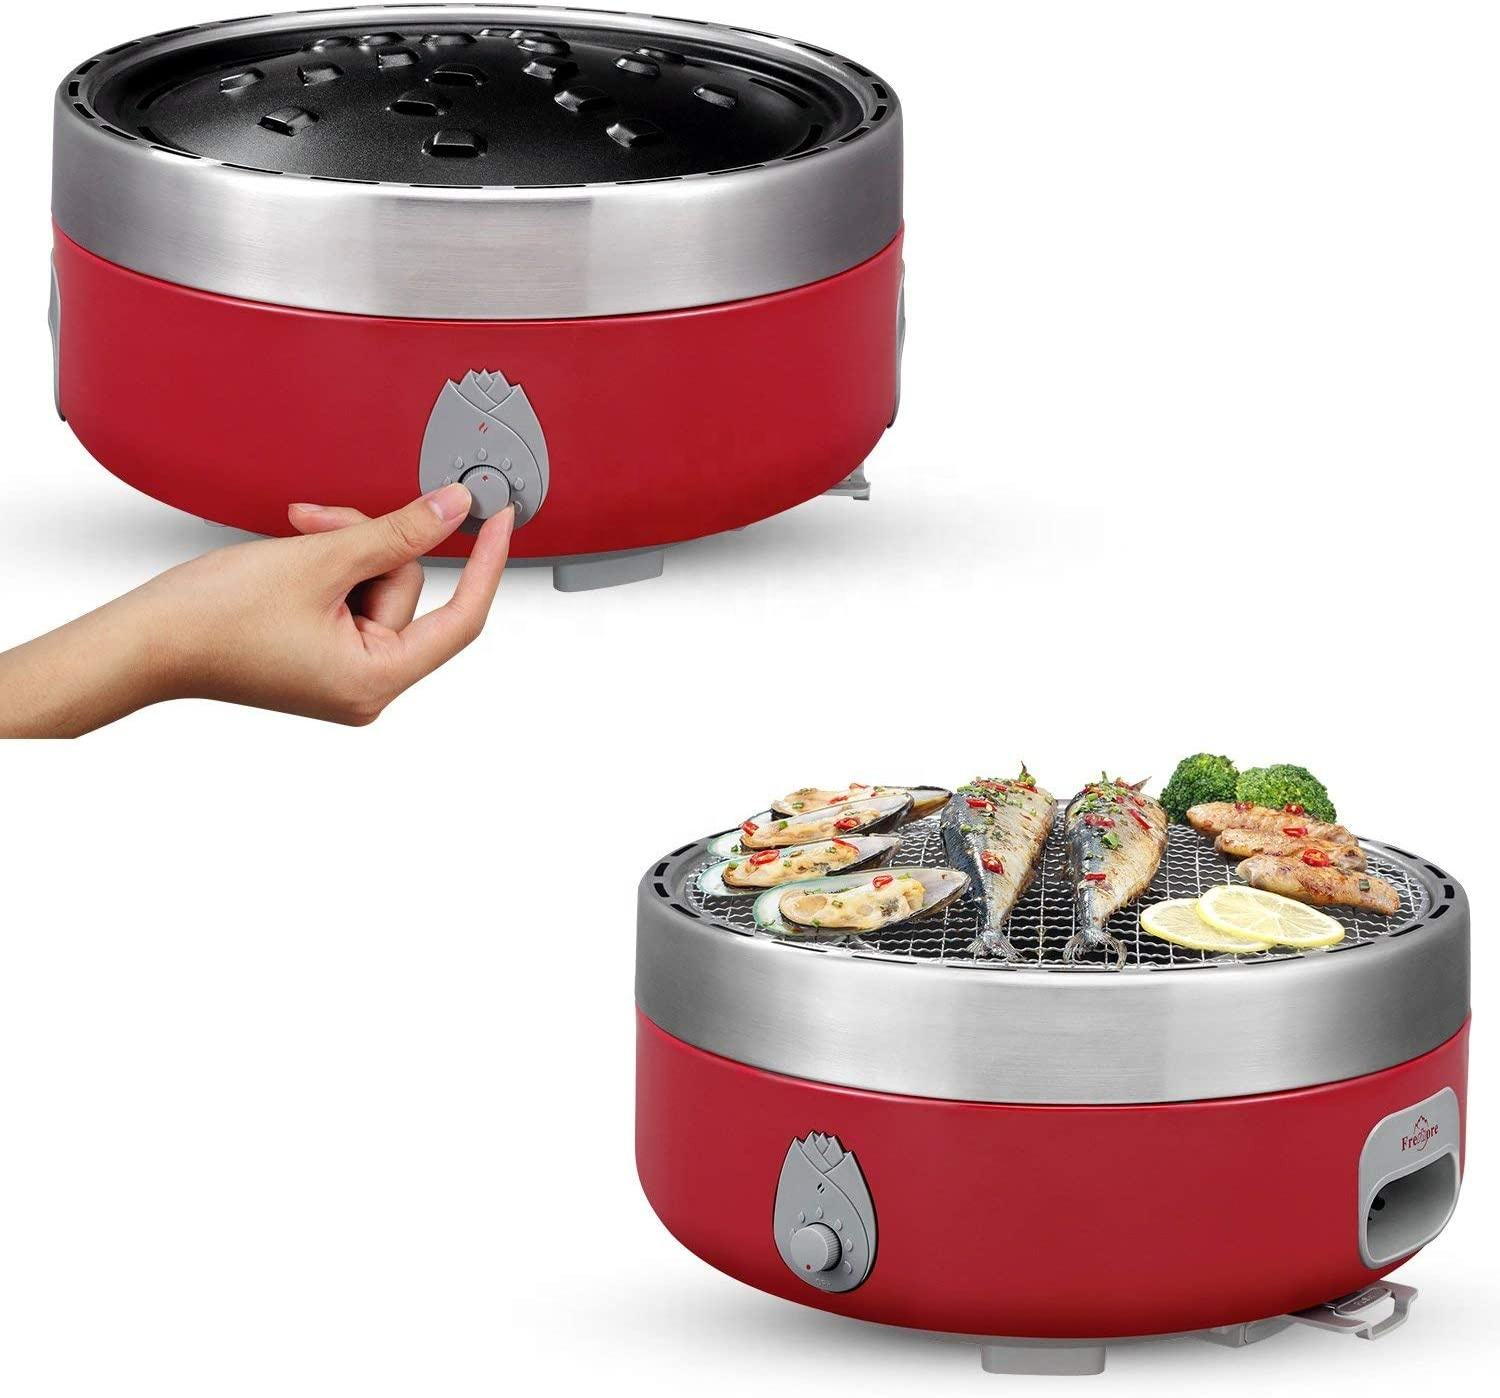 Portable Charcoal Barbecue Picnic Barbecue Garden Camping Party Beach Outdoor Barbecue